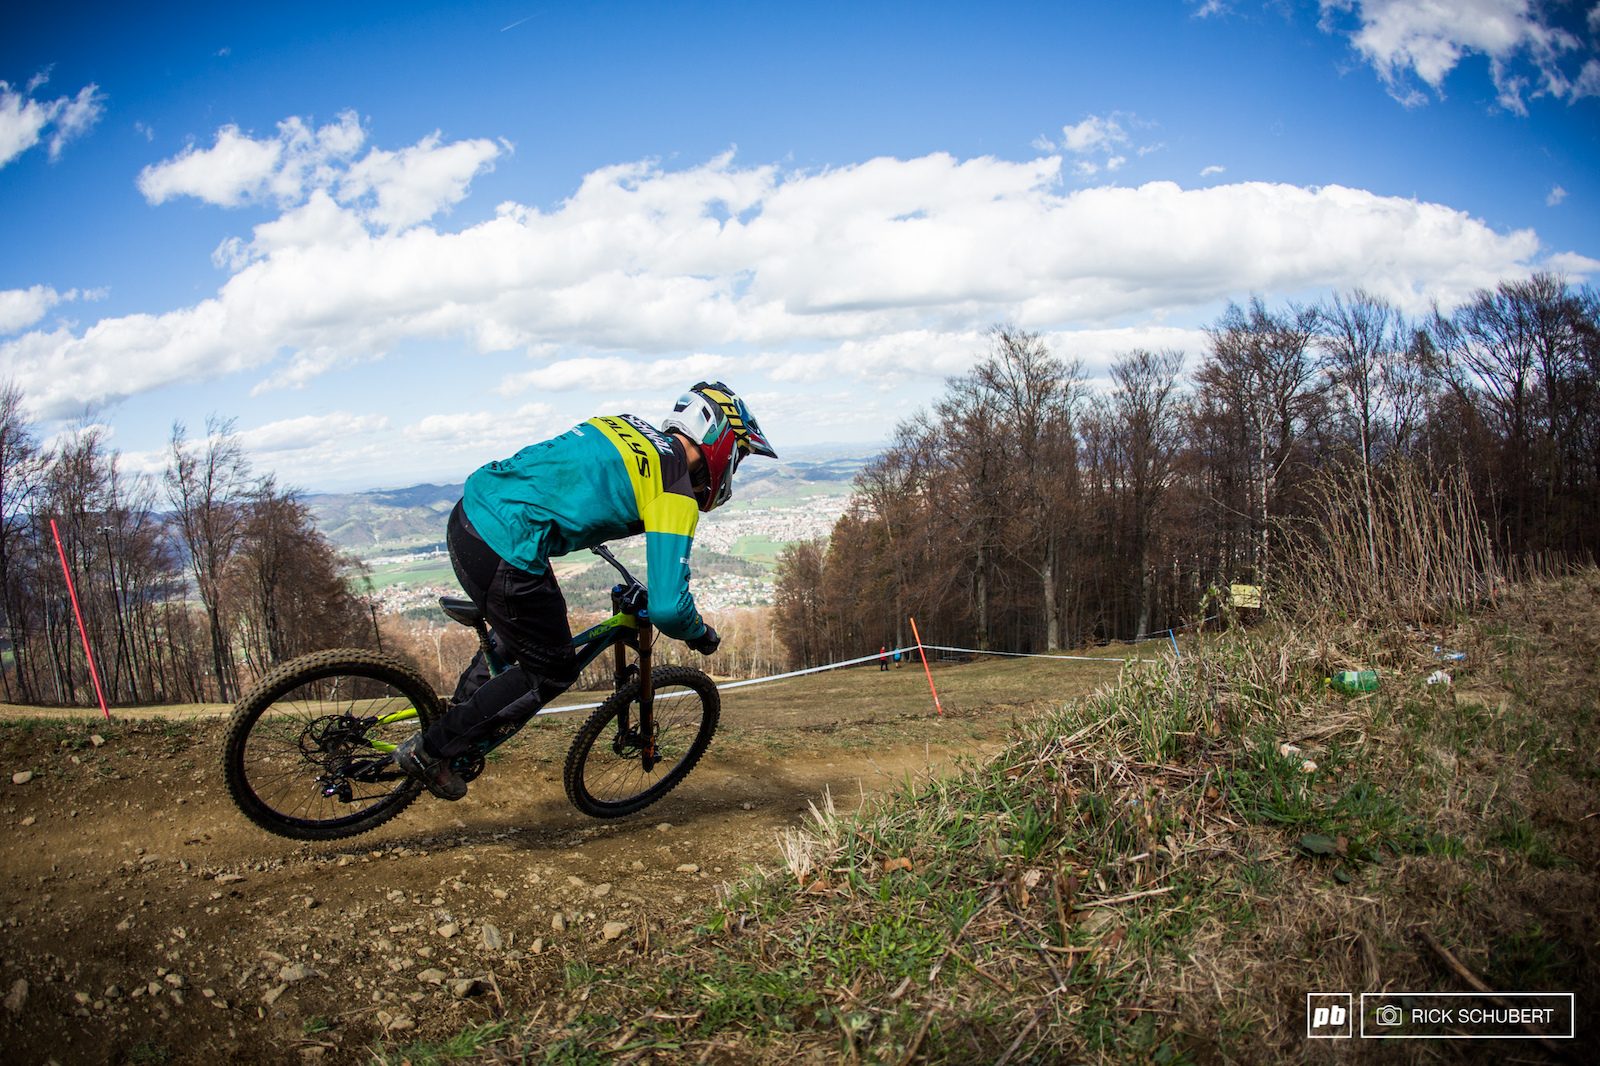 The legendary track in Maribor was the opening venue of the iXS European DH Cup and provided all time conditions and a rough track